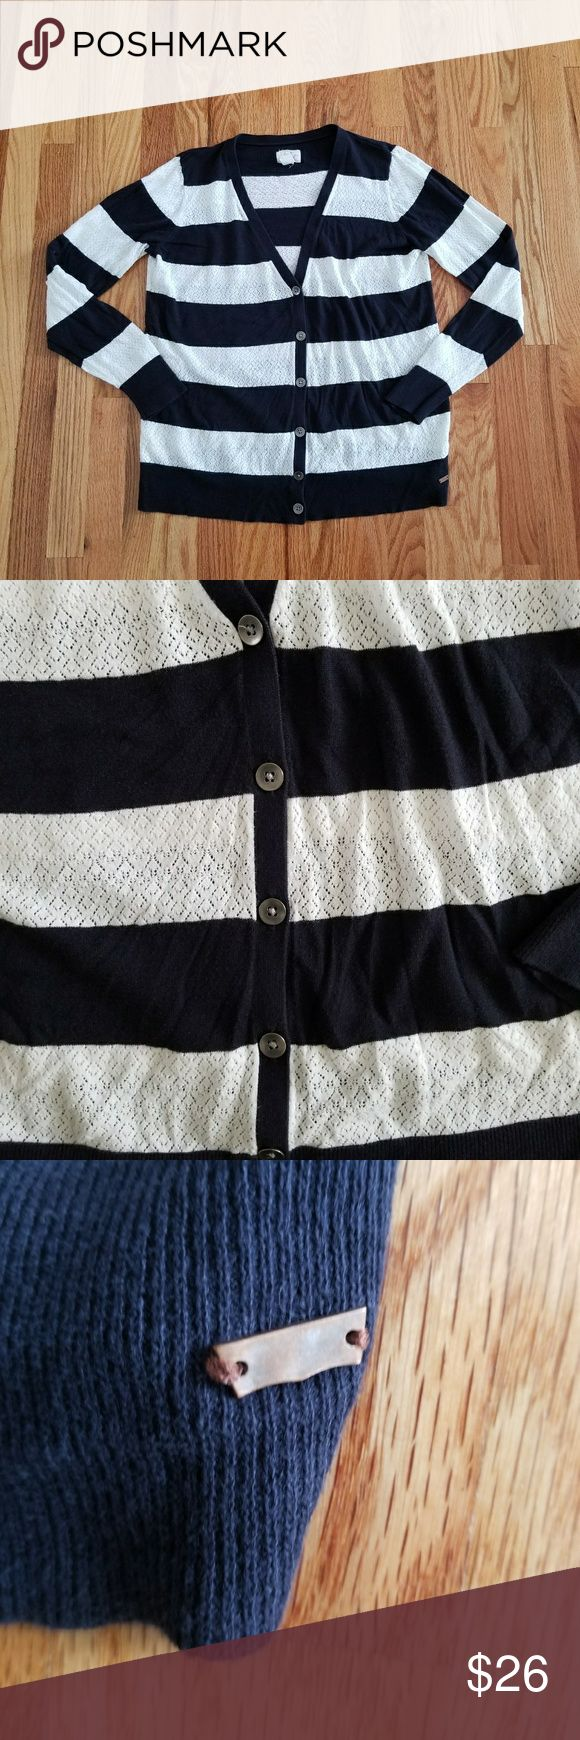 Levis Nautical Knit Cardigan This fine knitted cardigan makes for a comfortable and delicate look. The buttons are made of metal as well as the Batwing logo sewn in on the side. It's great nautical wear for the summer time goes great with white shirts or jeans! Size Large. Levi's Sweaters Cardigans